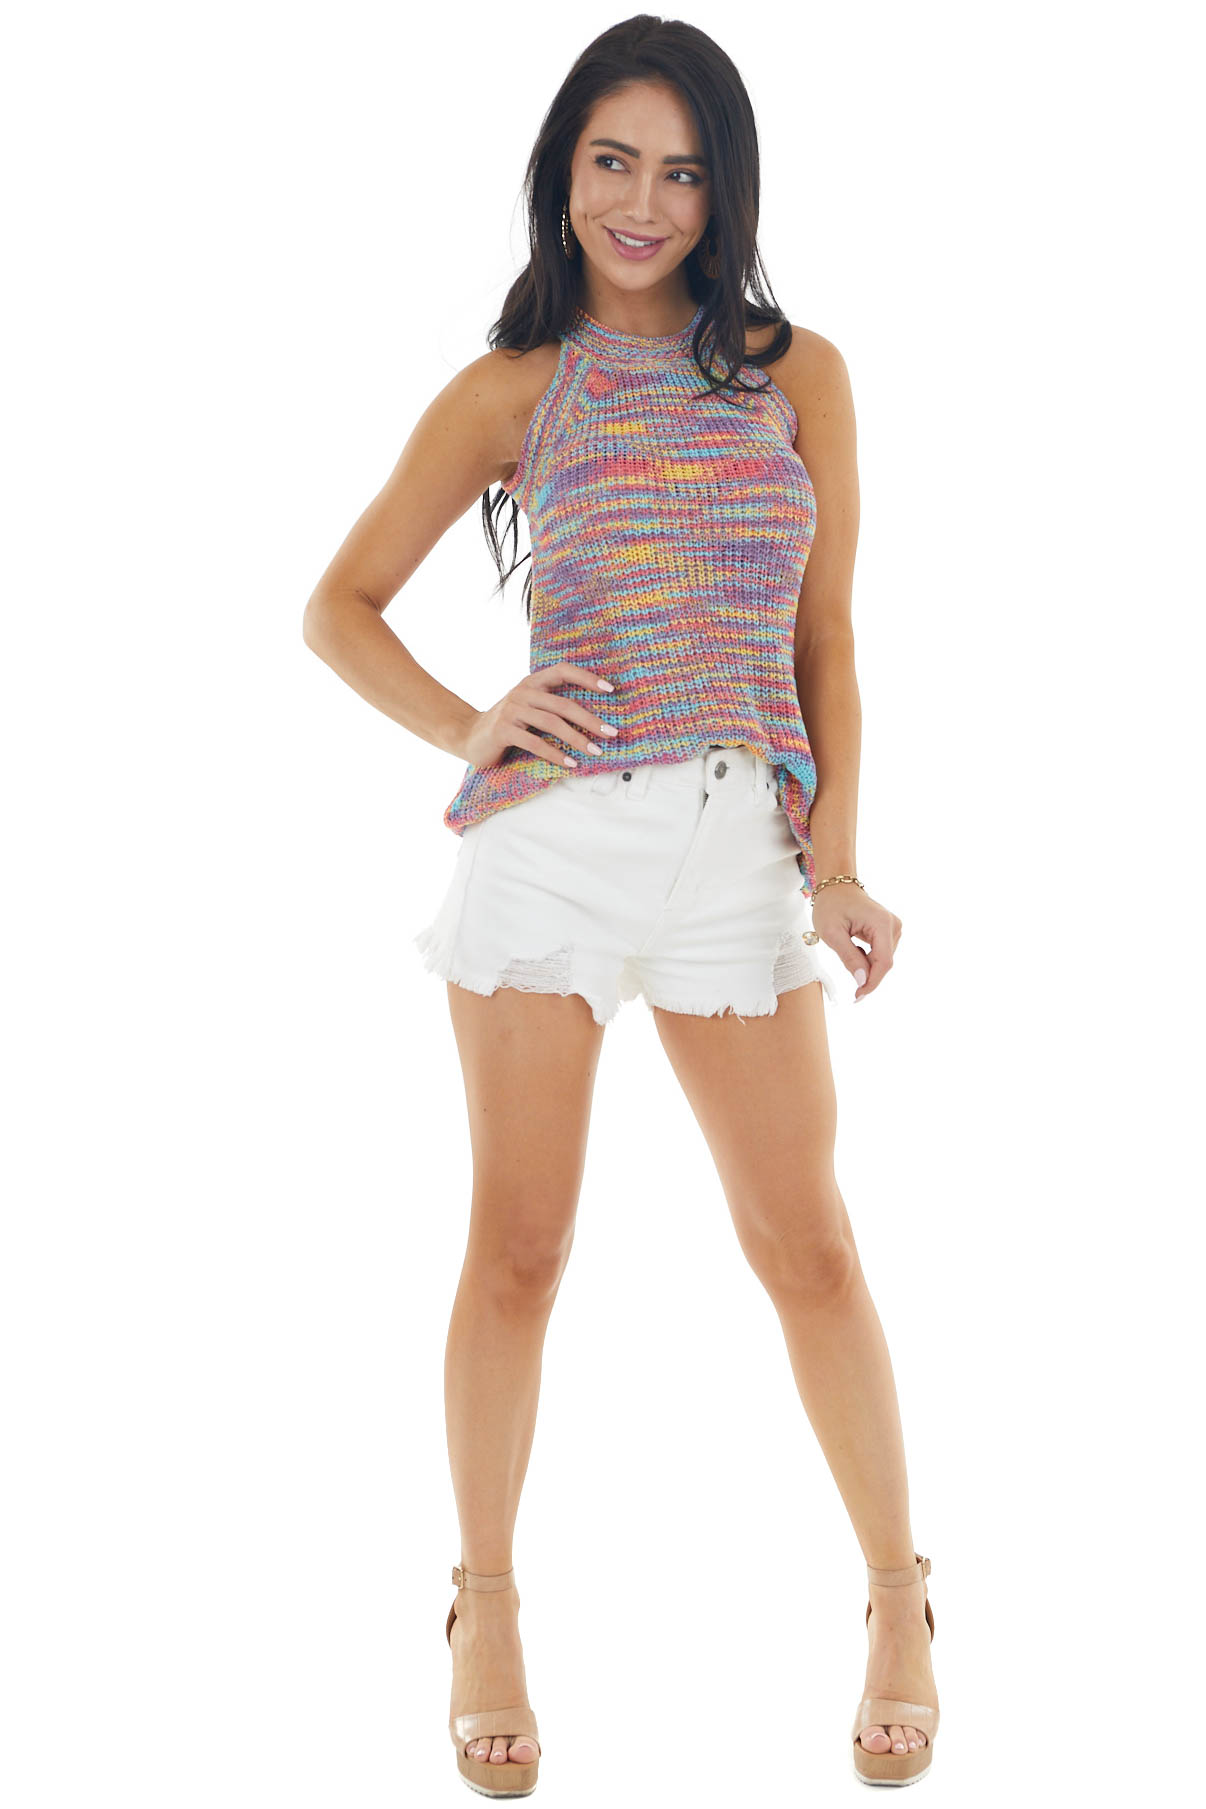 Iris Multicolor Sleeveless Halter Top with Ribbed Details